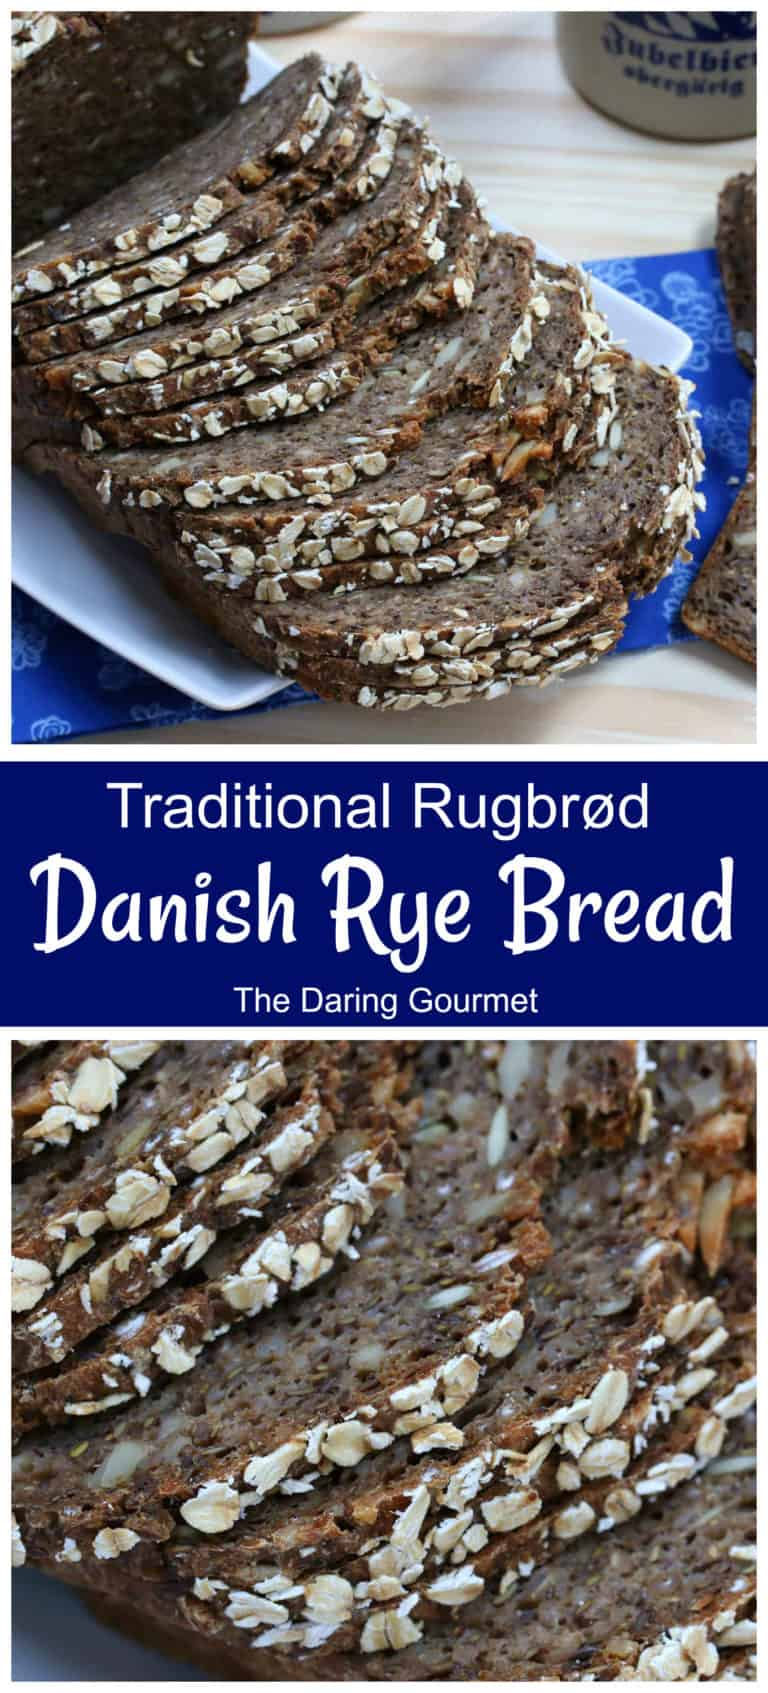 danish rye bread recipe traditional rugbrod authentic sourdough fermented